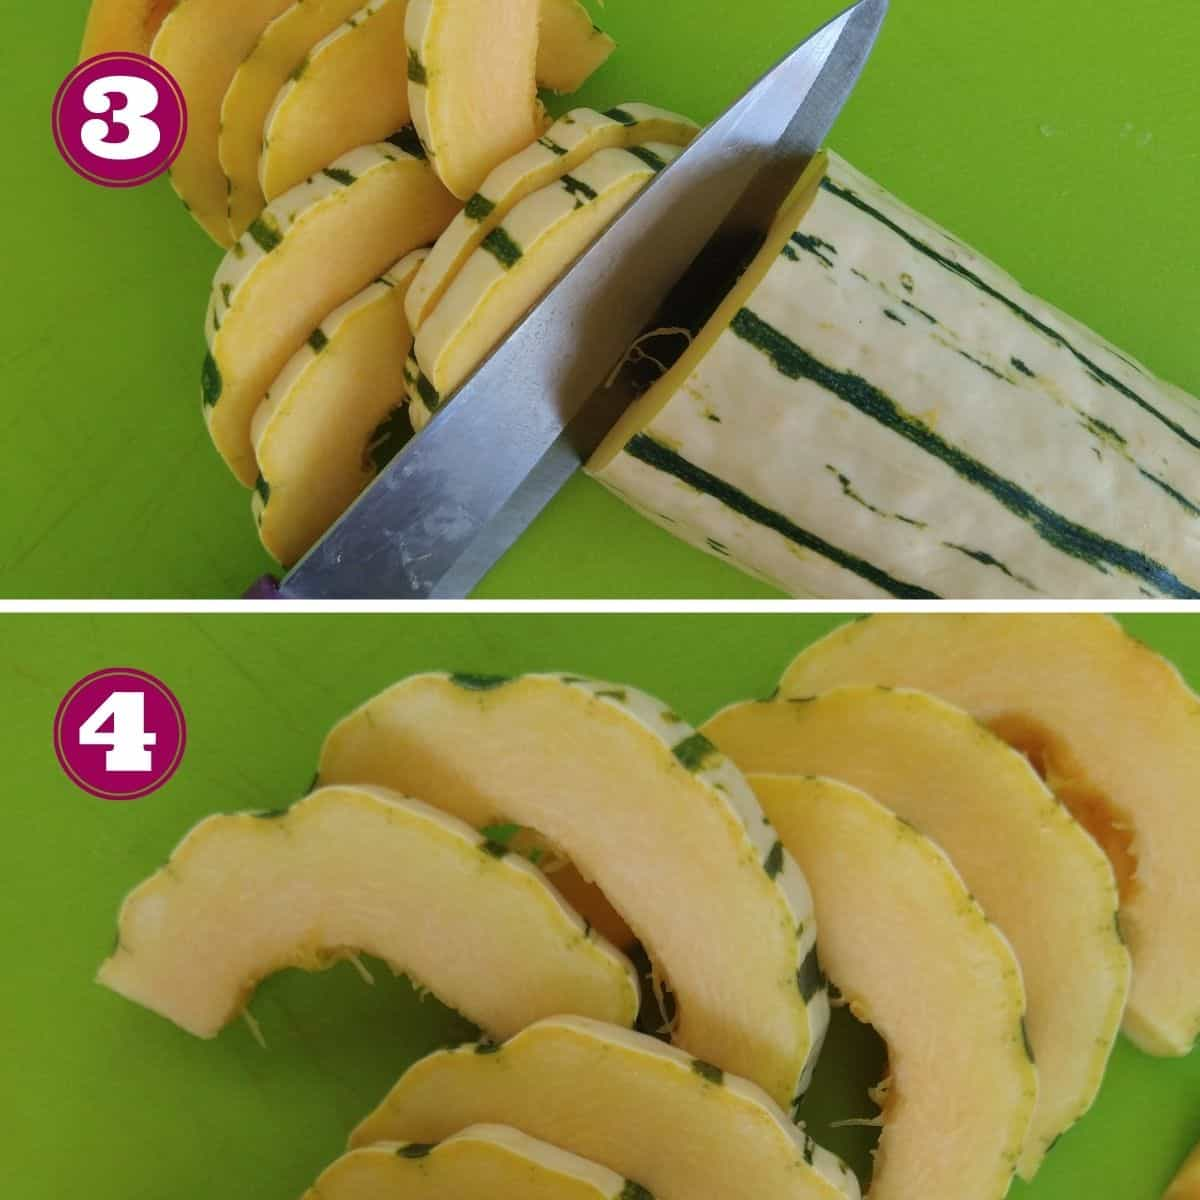 Step 3 shows Delicata squash being sliced with a knife into half moon shapes. The squash is on top of a bright green plastic cutting board. Step 4 shows all the finished half moon slices with the skin still attached.